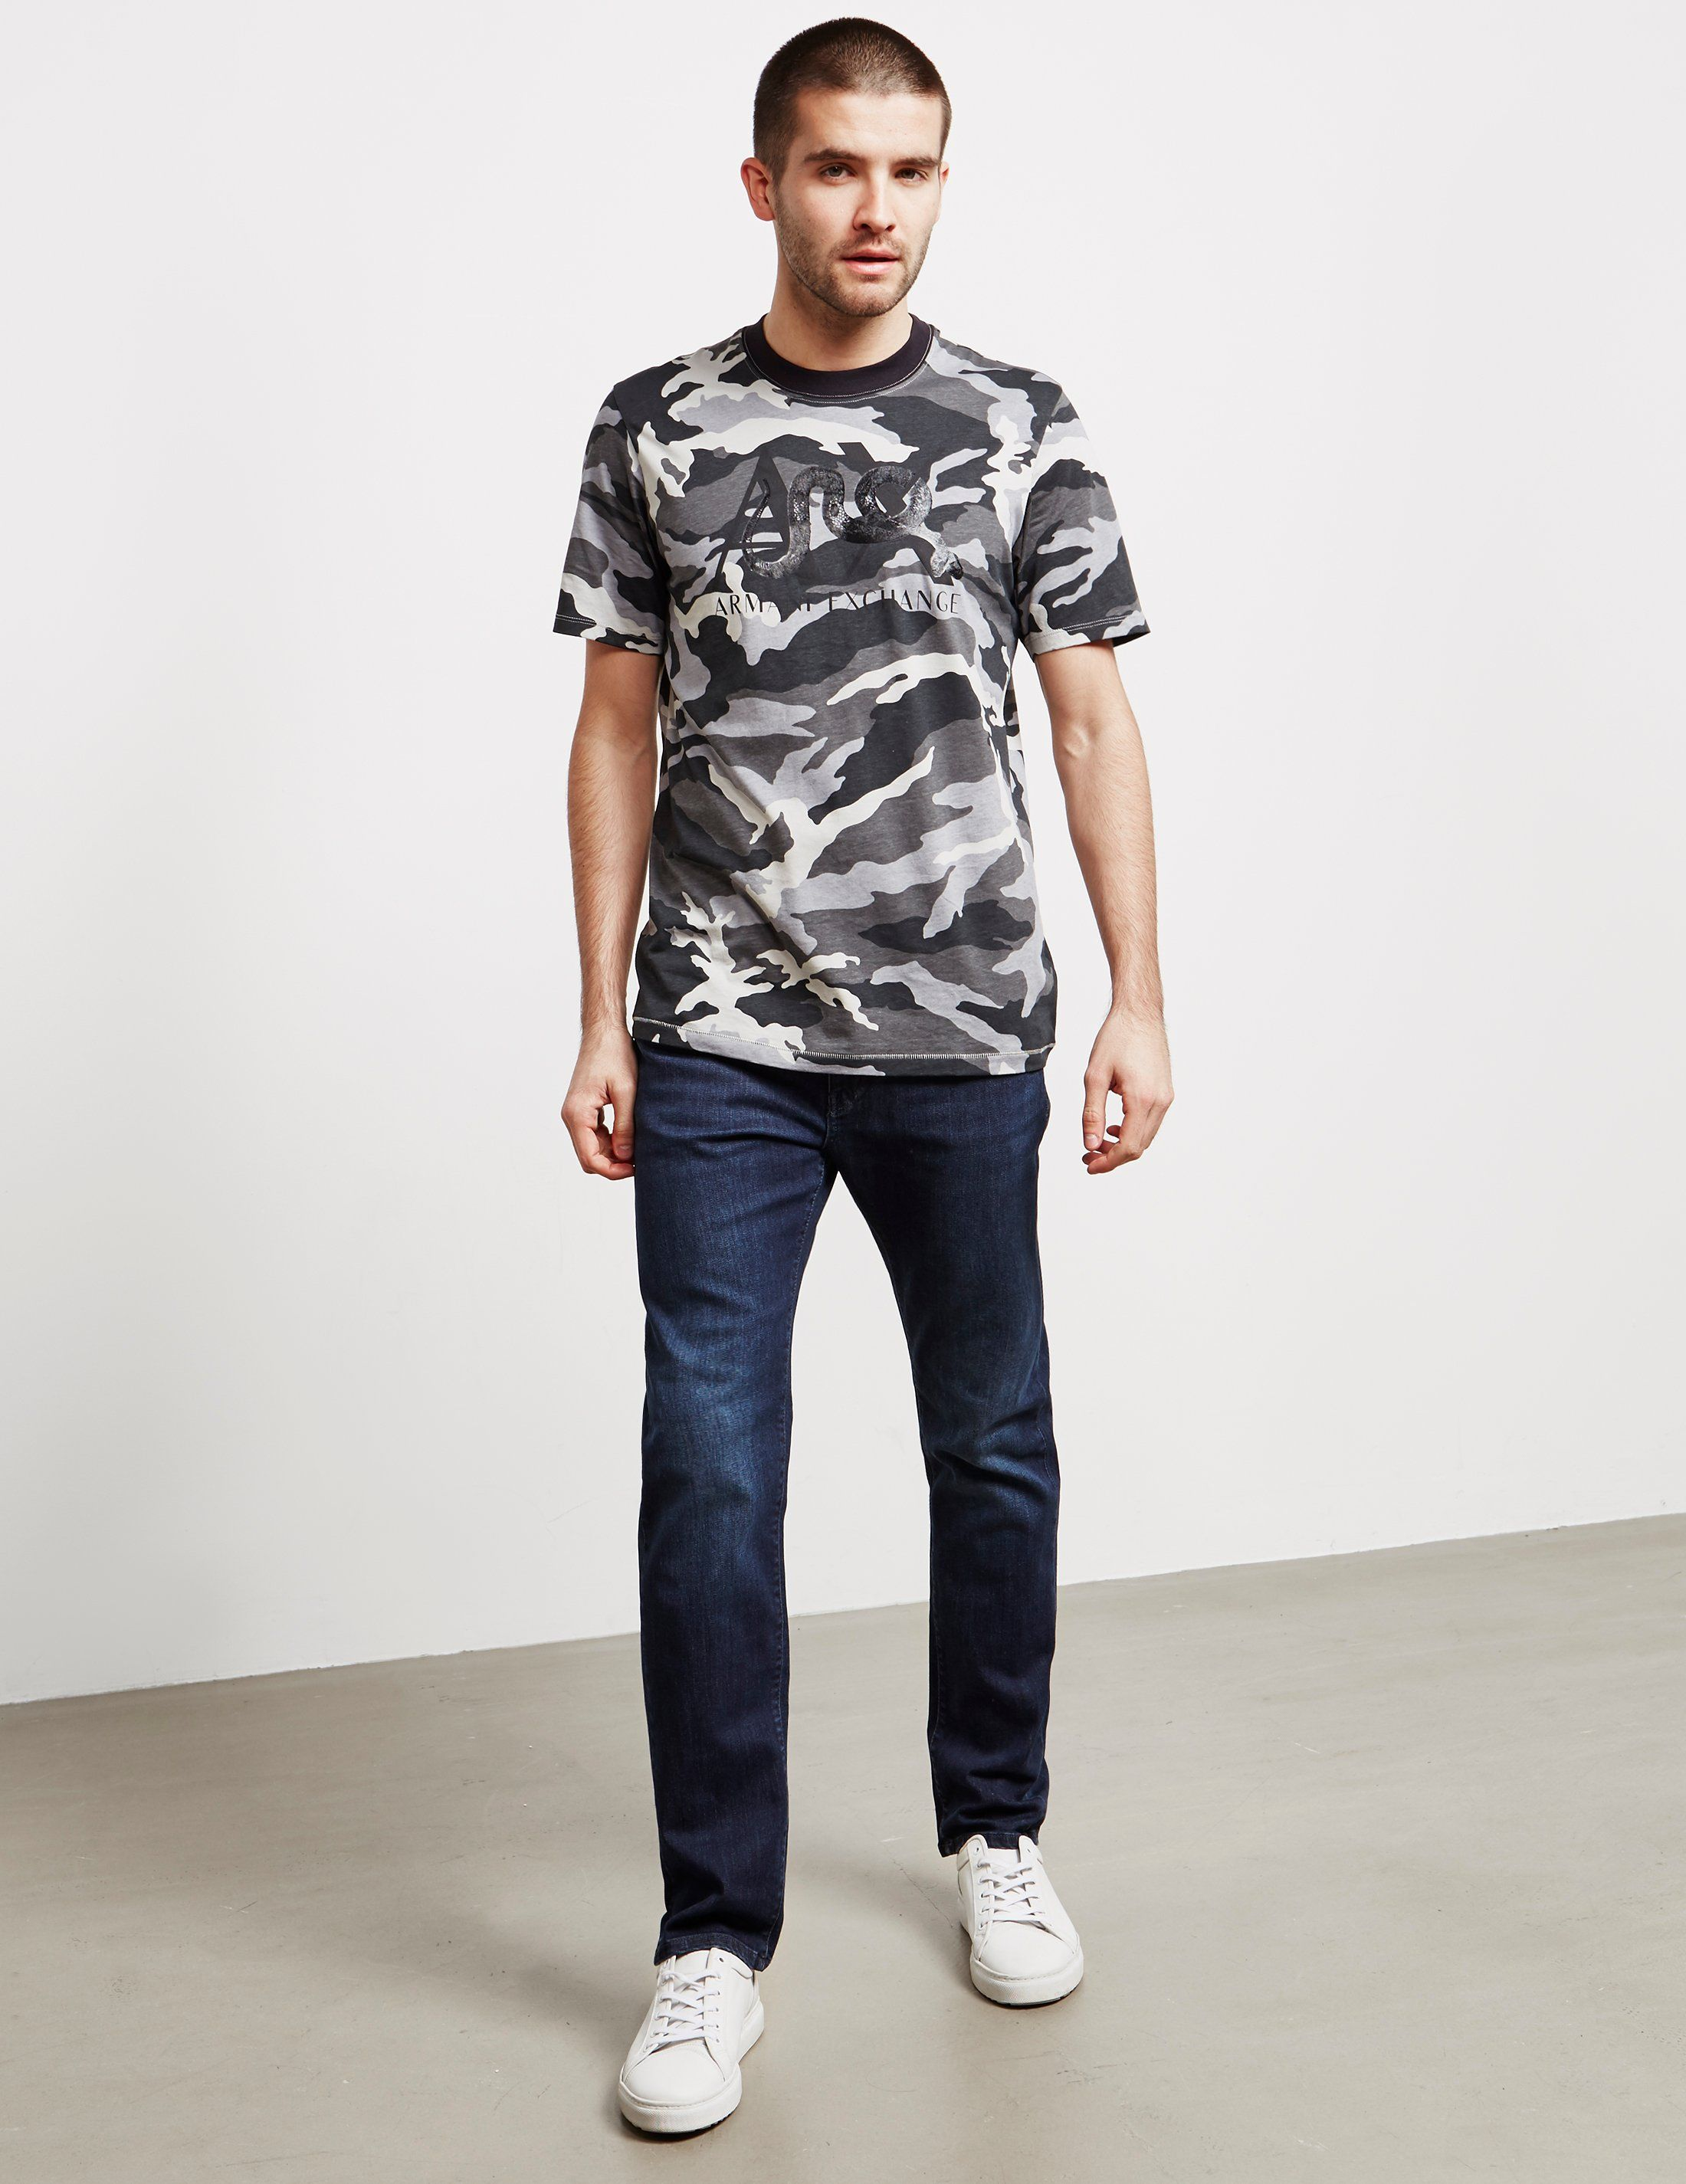 Armani Exchange Camo Short Sleeve T-Shirt - Online Exclusive